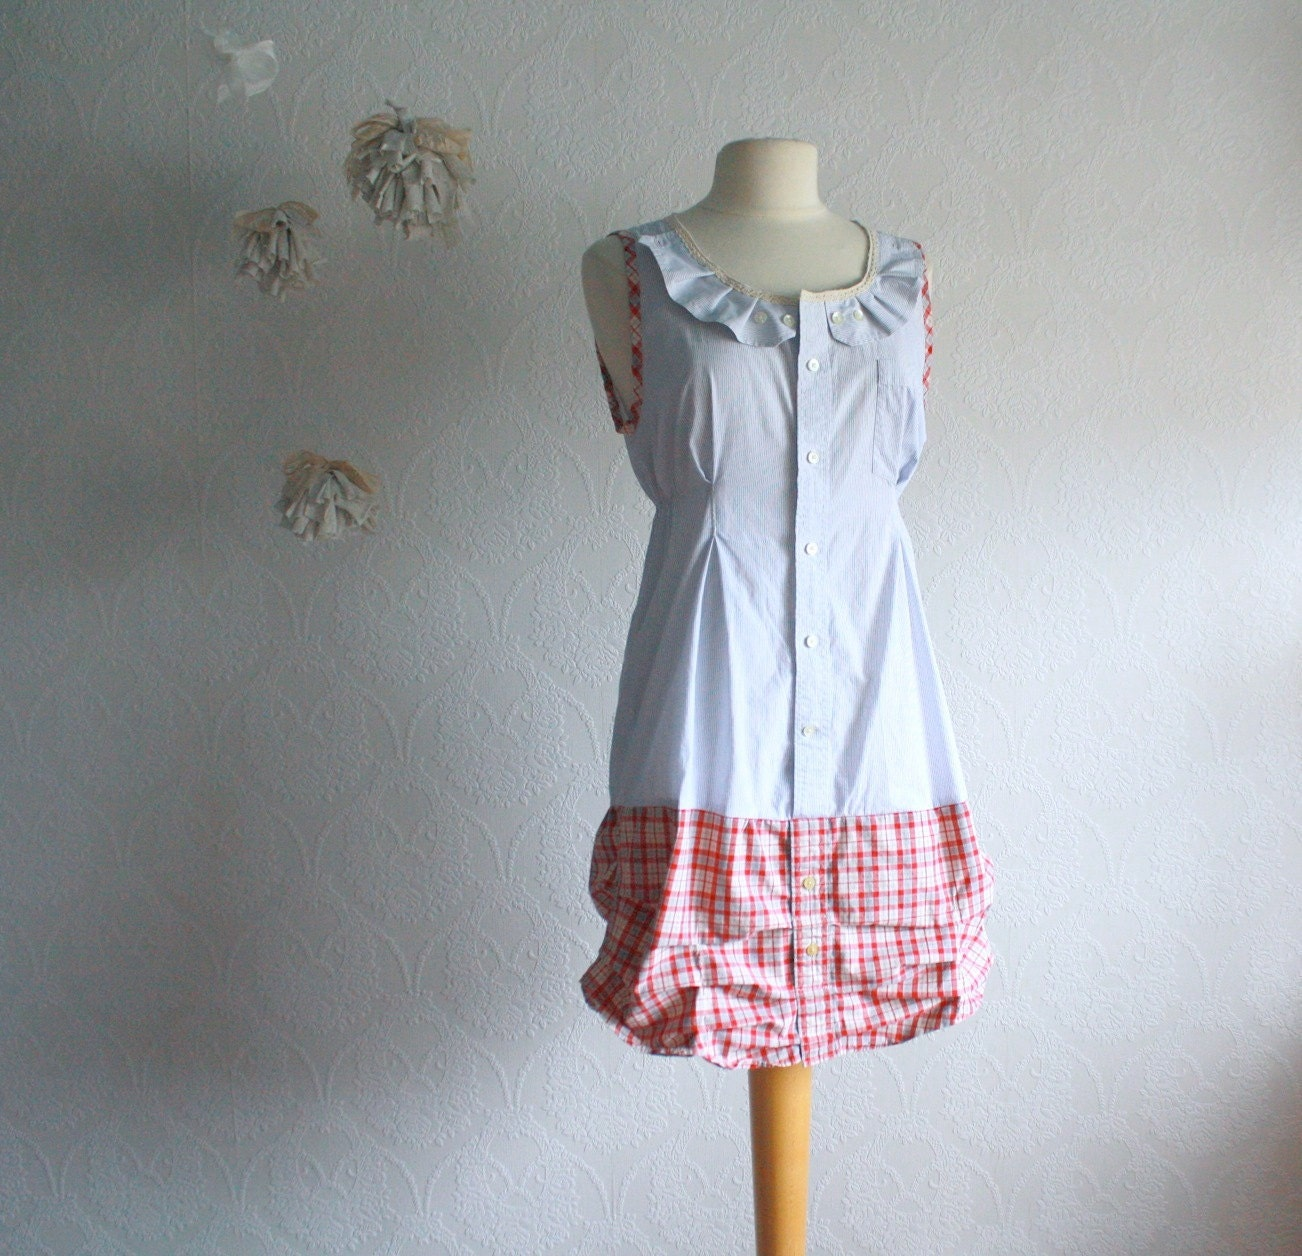 Women's Clothing Shabby Chic Dress Blue Red Plaid Upcycled